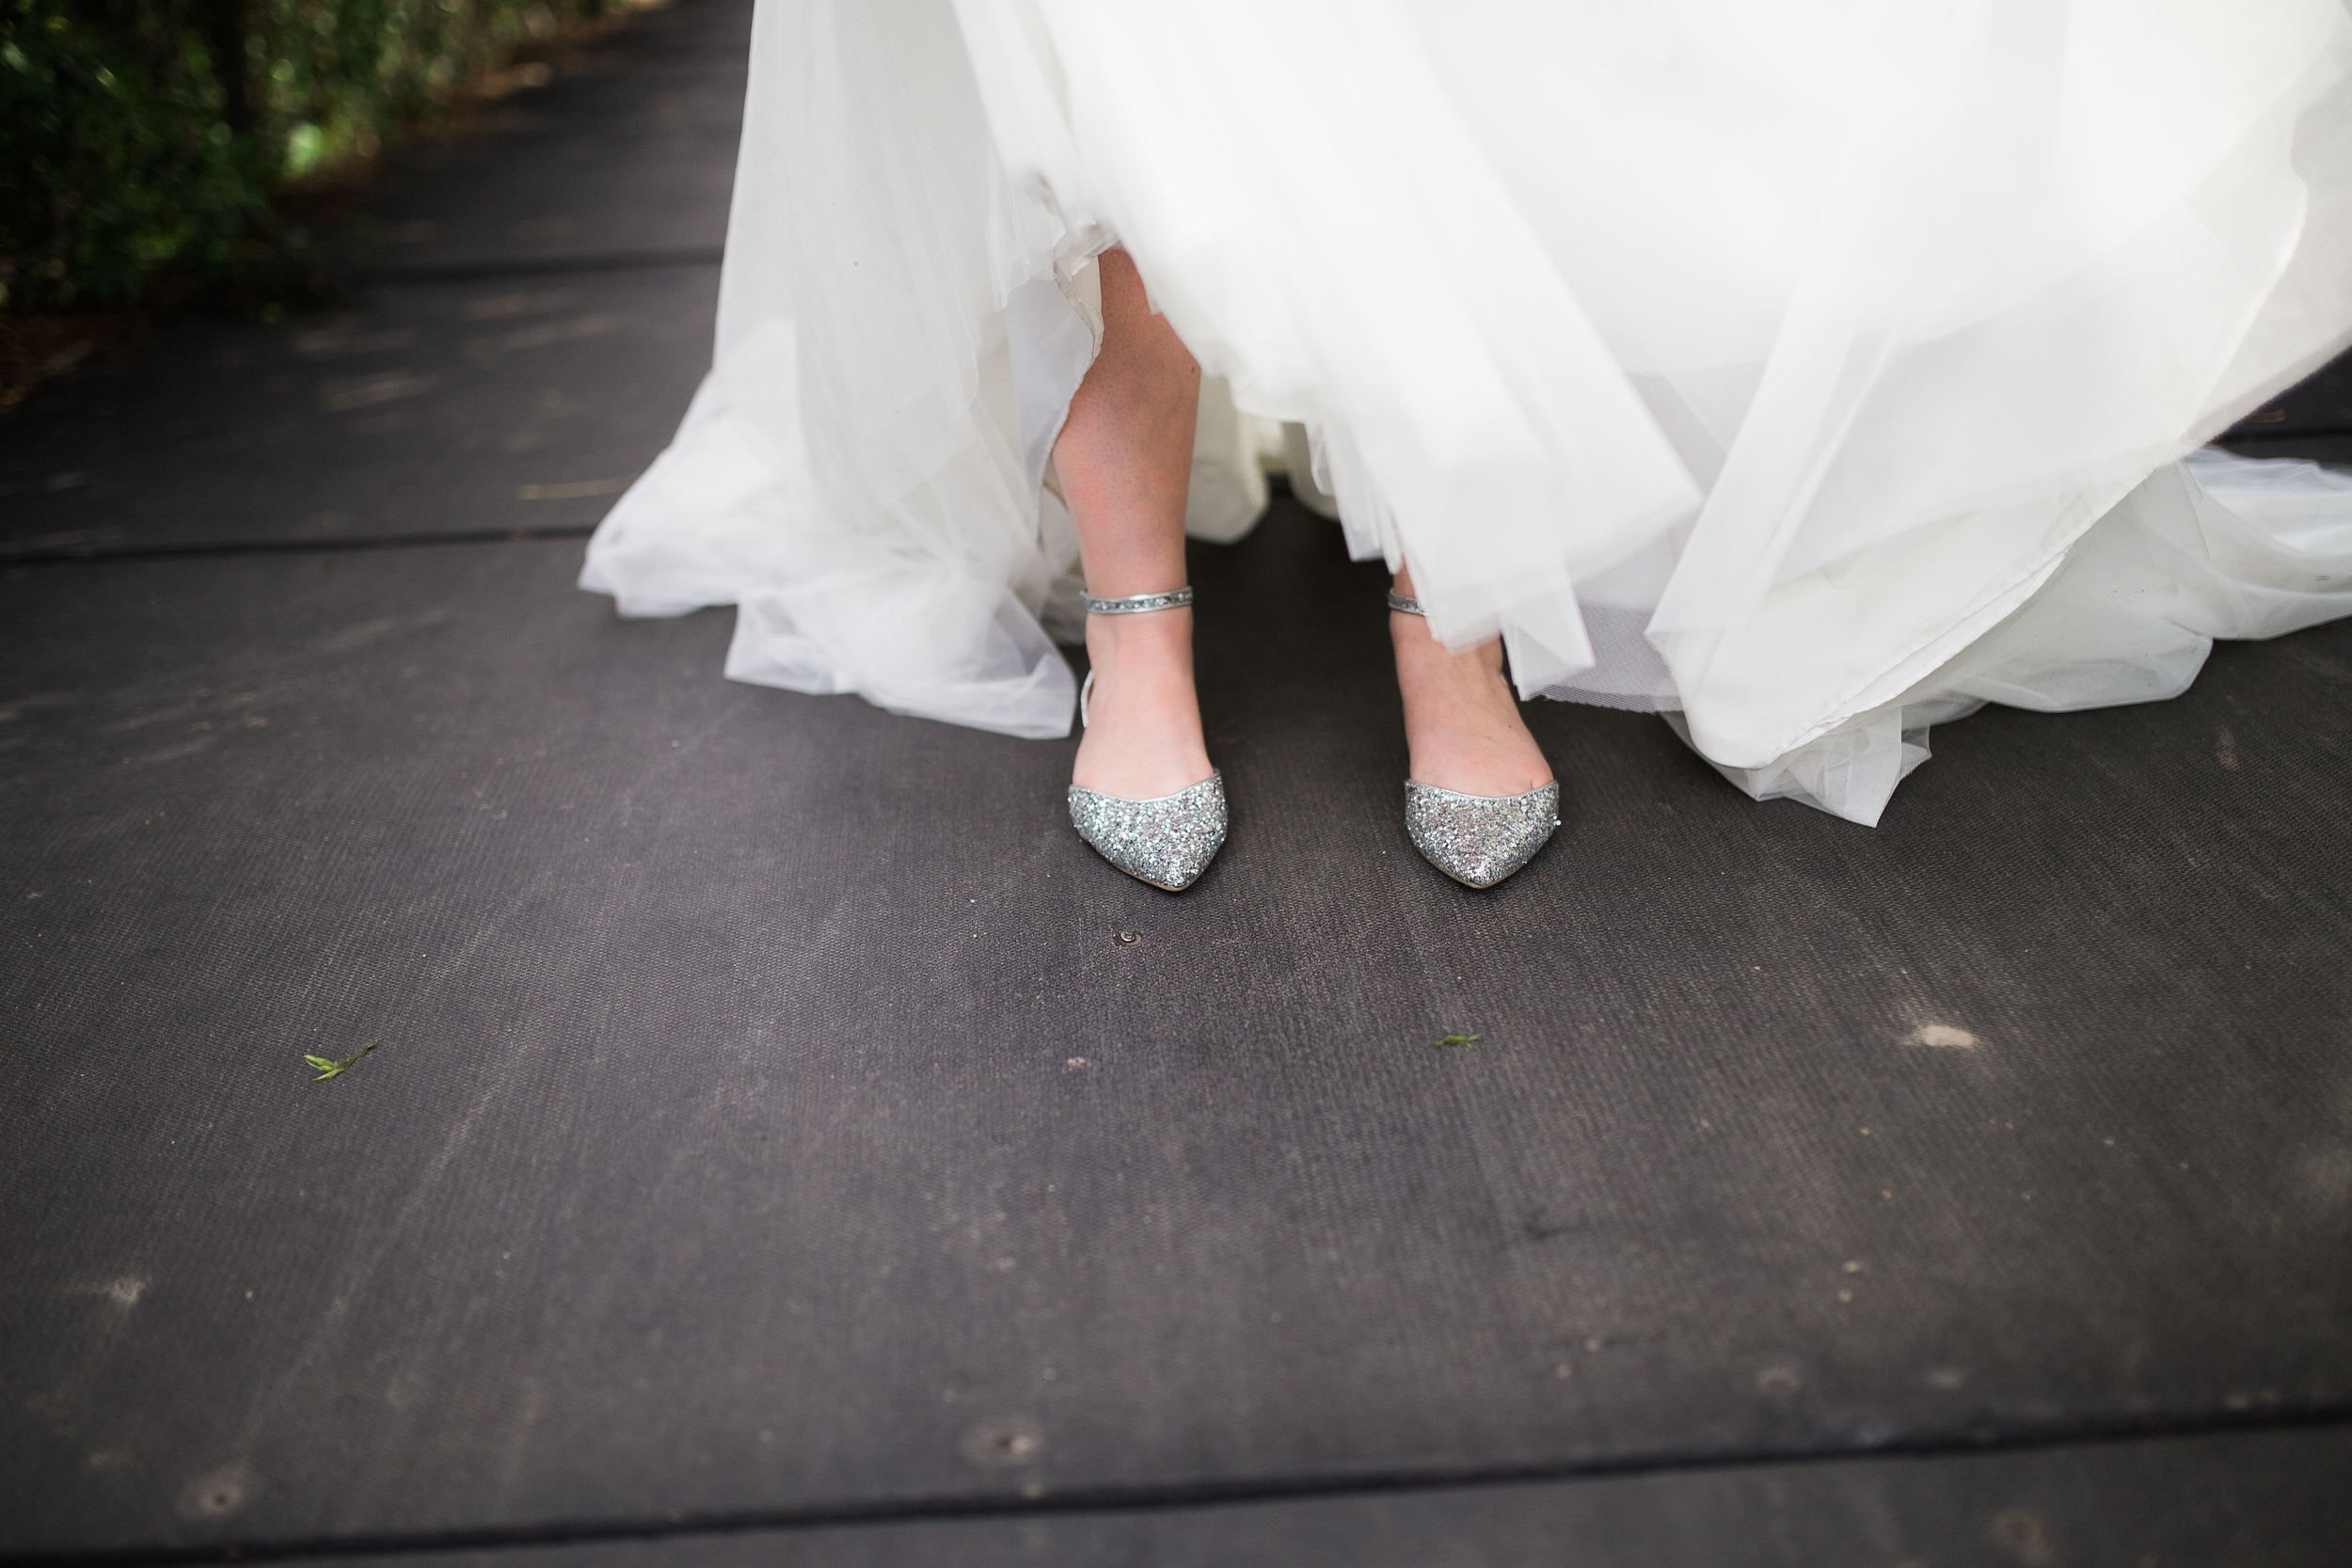 Coohills Wedding Photographer - steve madden wedding shoes